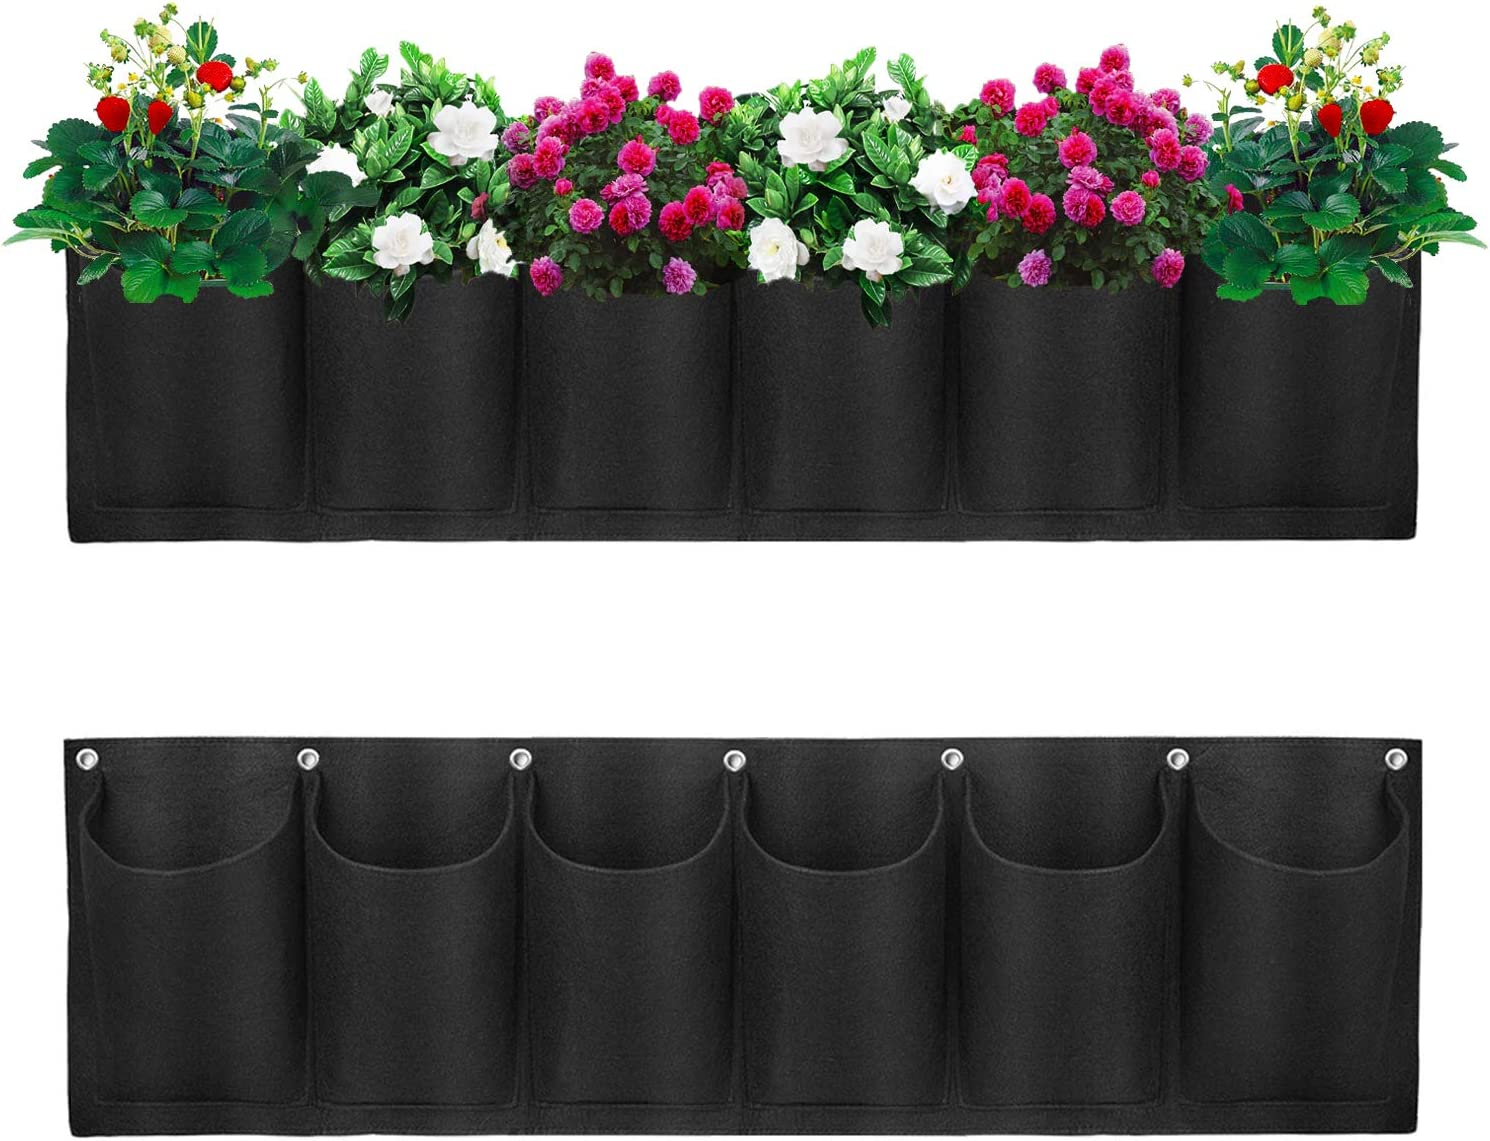 PUISUIT Garden Hanging Planter Grow Bag, Outdoor Wall Mount Fence Planting Pouch with 6 Pocket for Vegetables, Herbs and Flowers, Horizontal, Waterproof Back, Black(2 Pack)